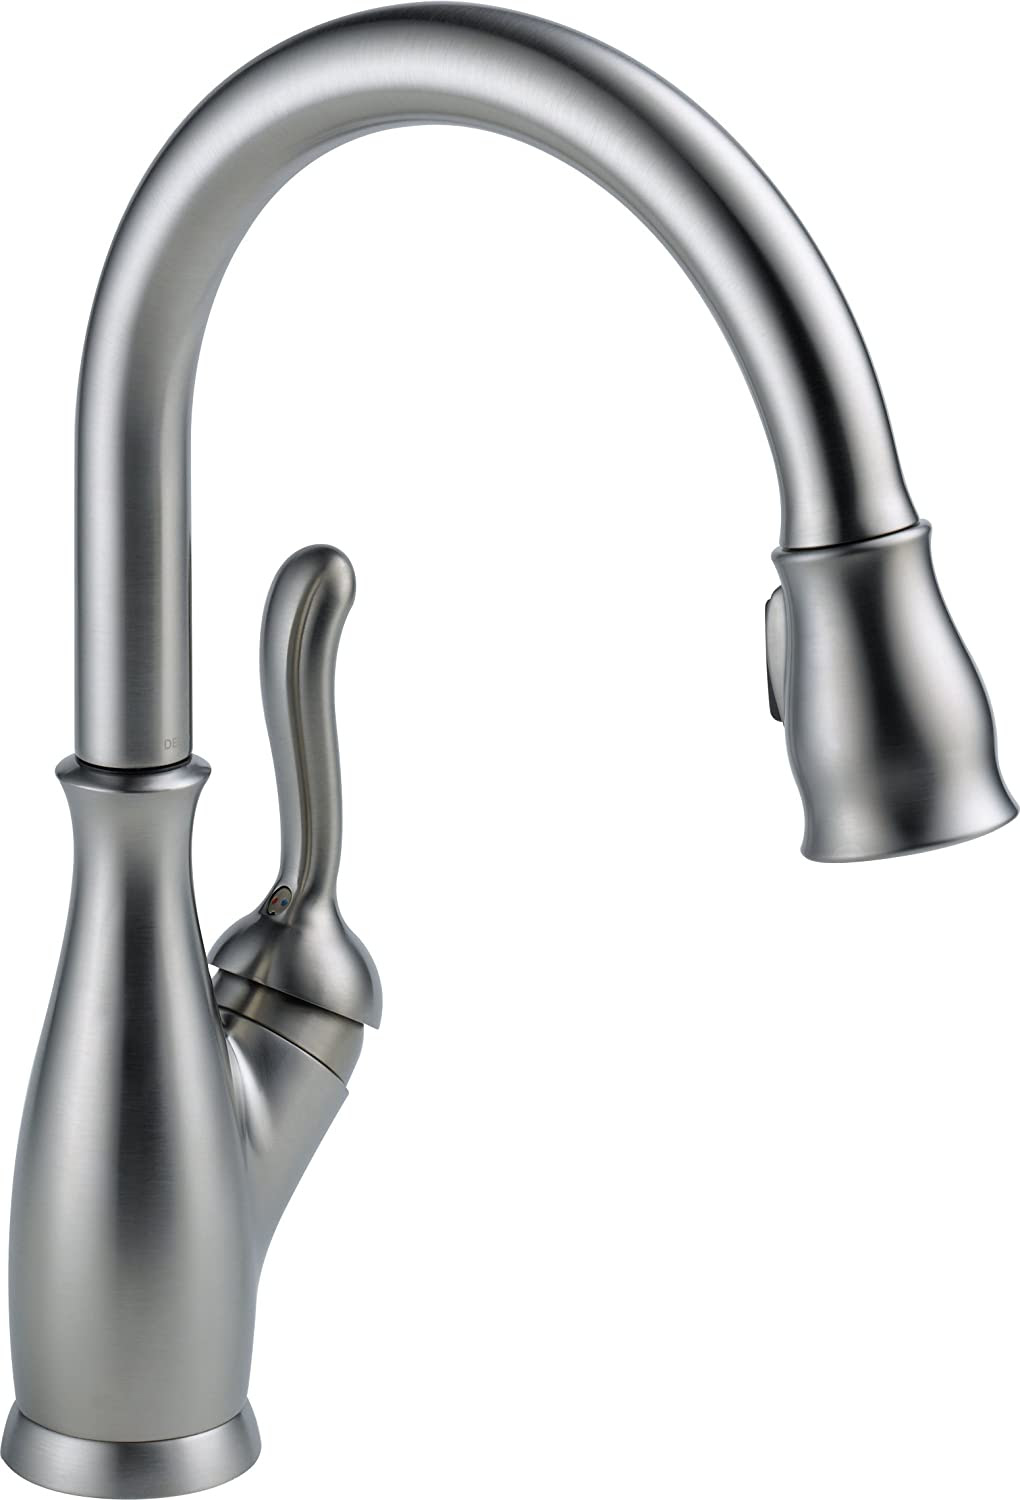 Amazon.com: Kitchen Sink Faucets: Tools & Home Improvement: Touch